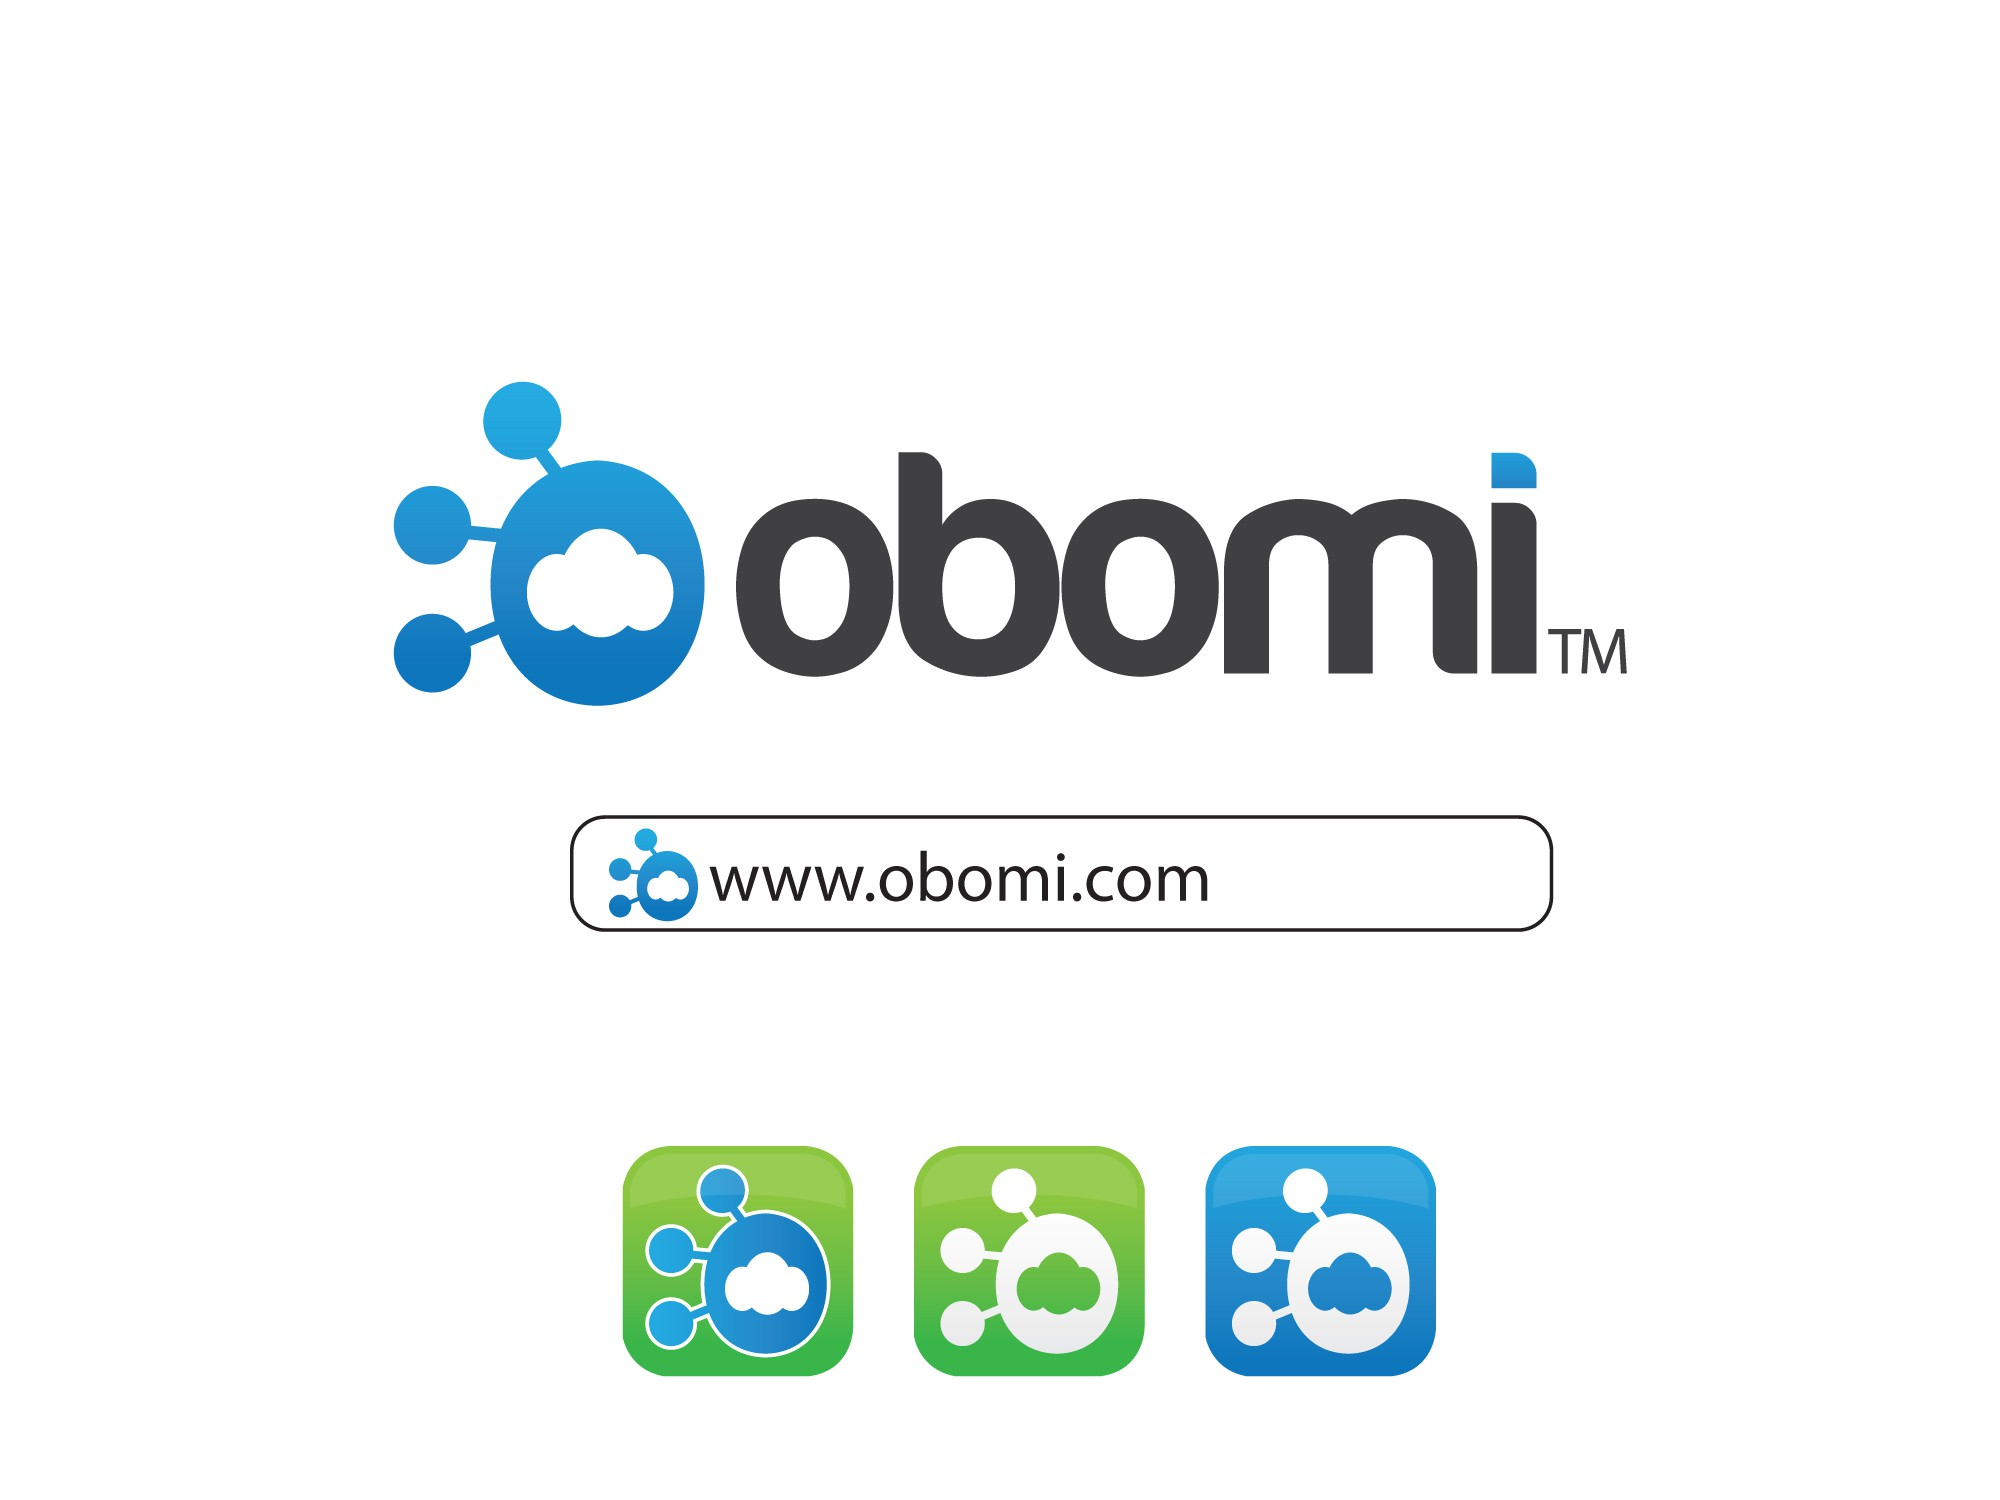 Obomi needs a new logo